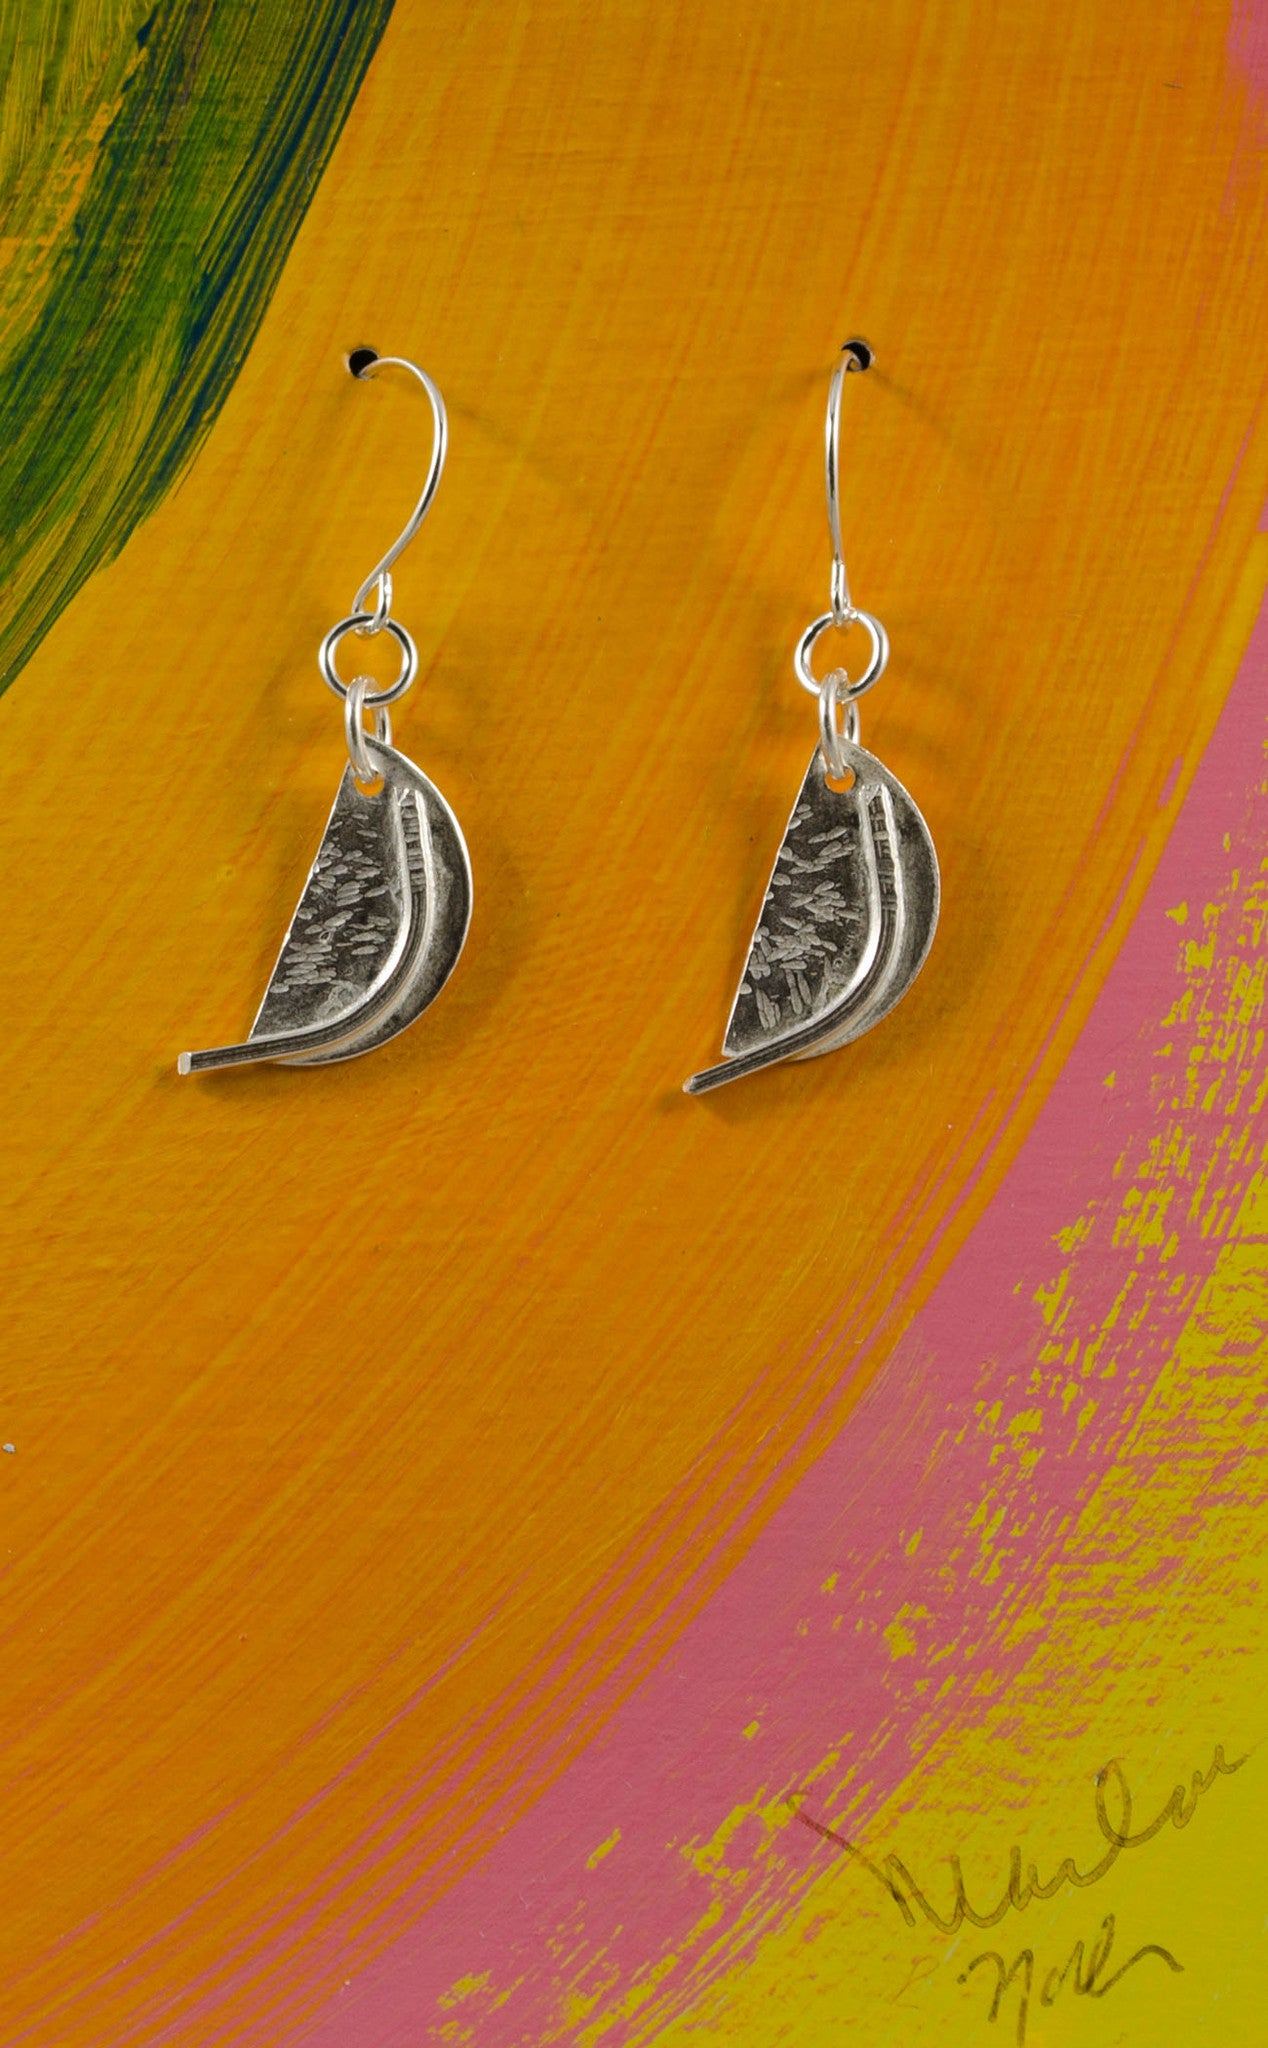 55bfaefbc Handmade Sterling Silver Half Moon Earrings with Curved Wire ...